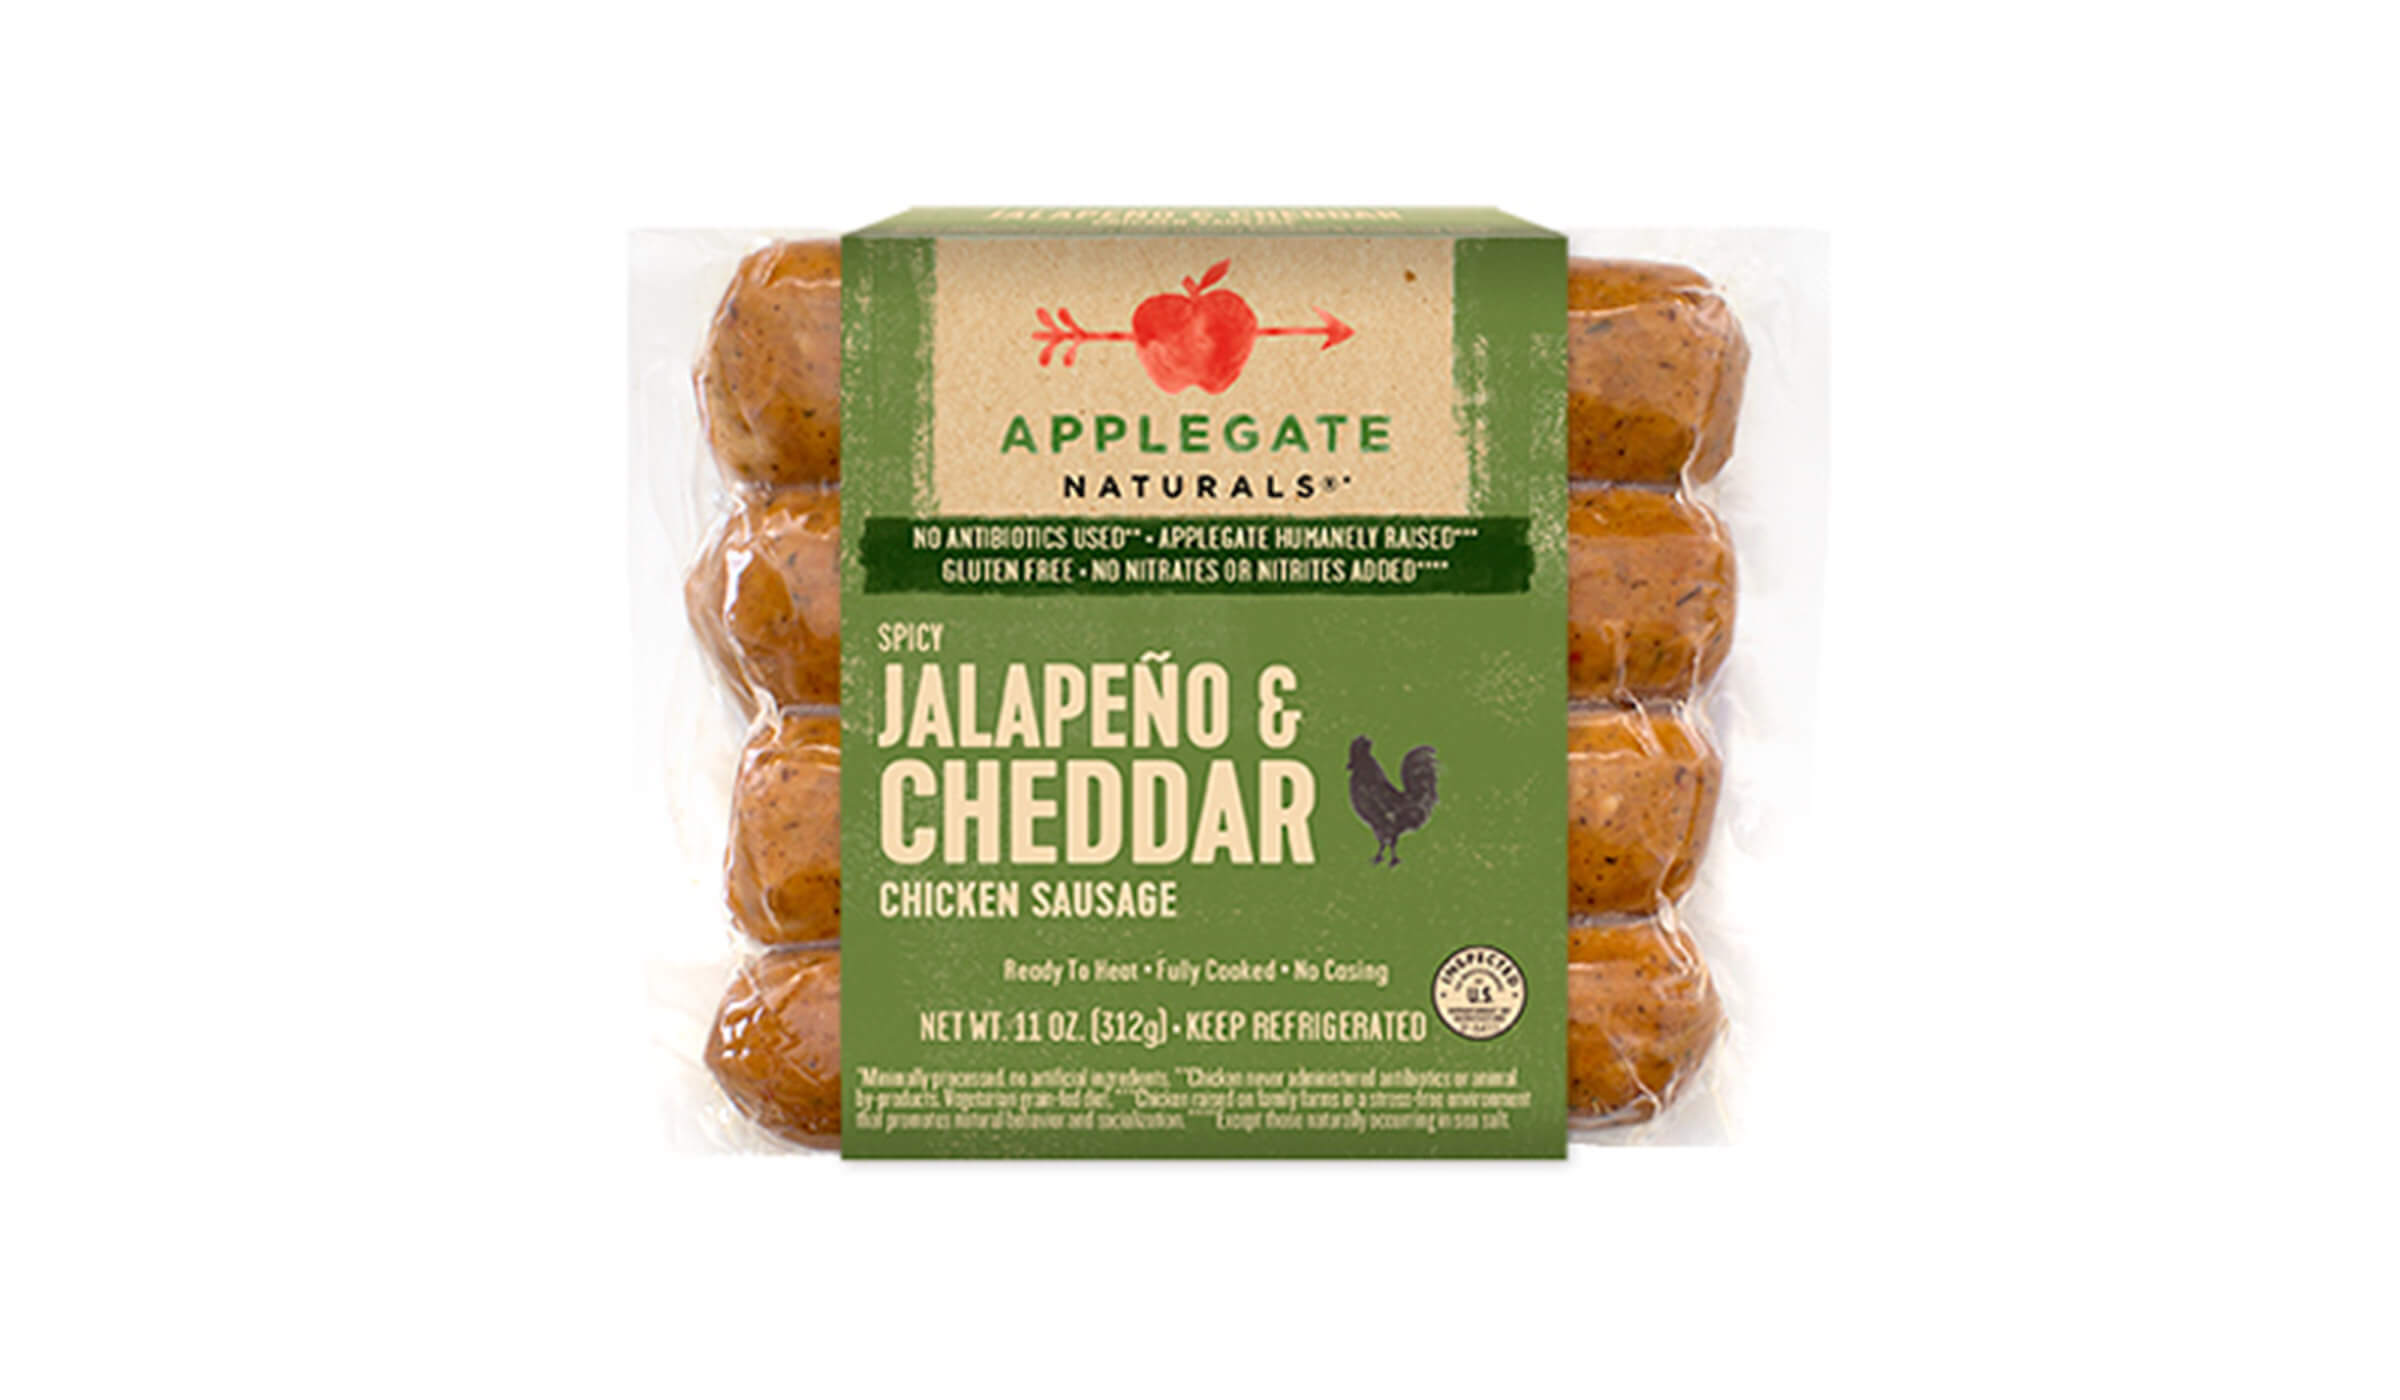 Applegate Naturals® jalapeno and cheddar sausage